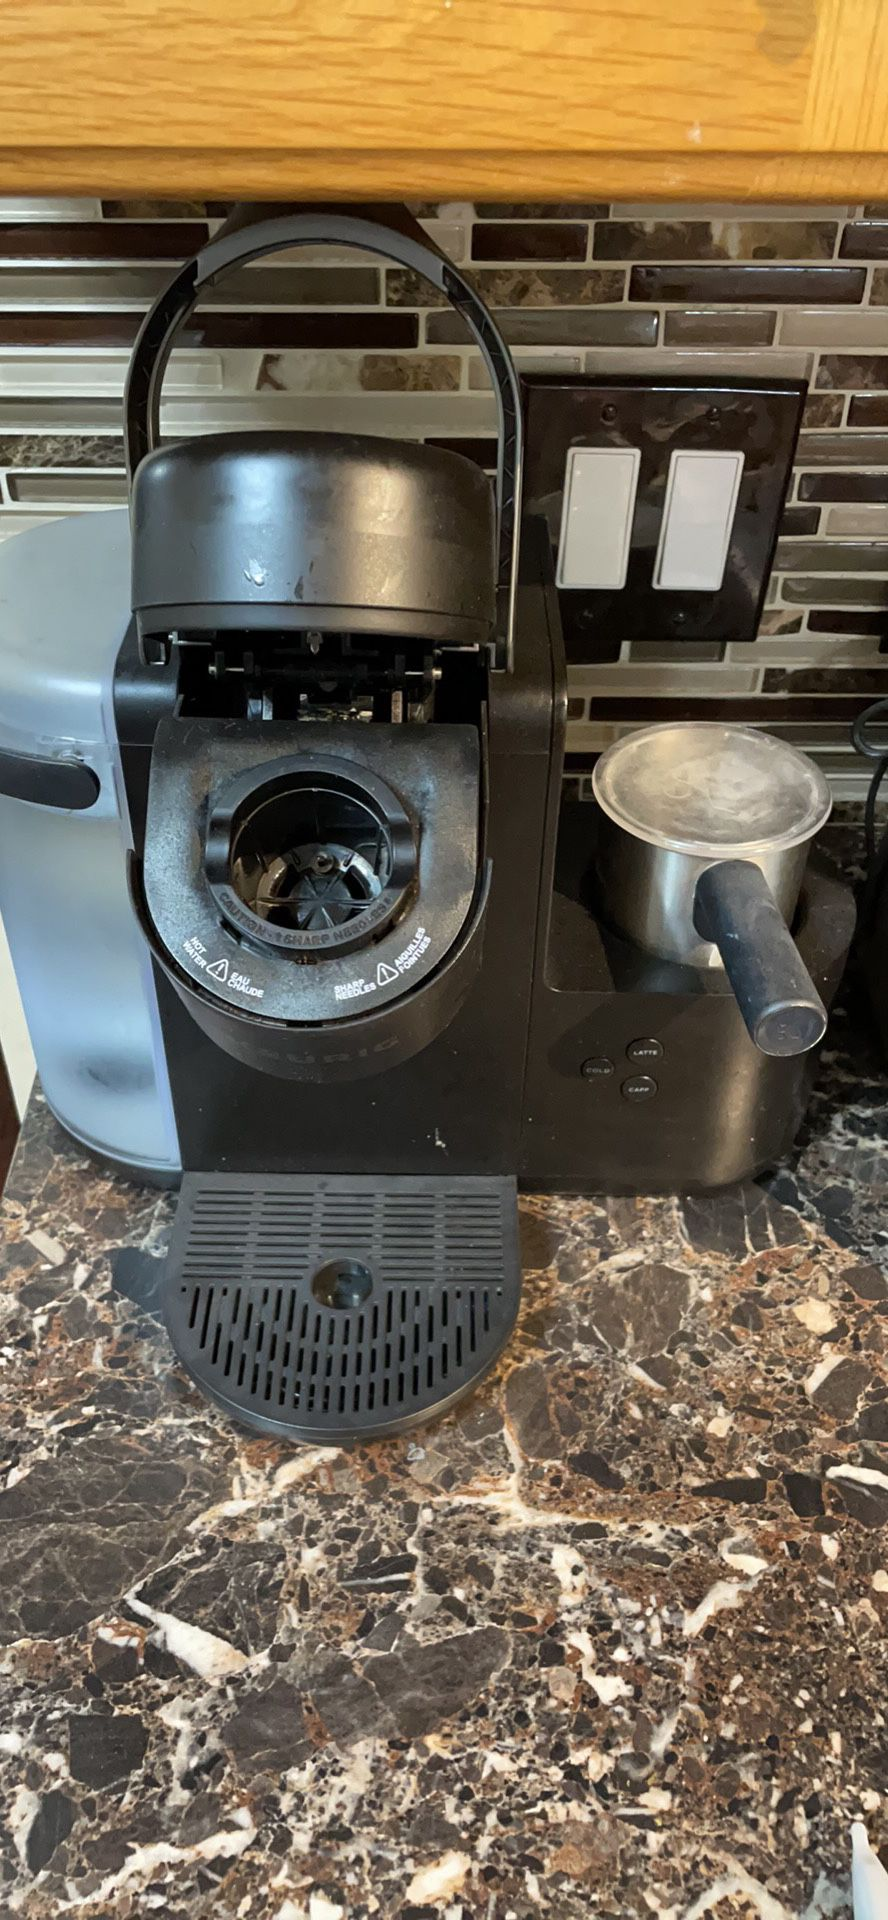 Keurig Cafe Cappuccino And Lattes Maker